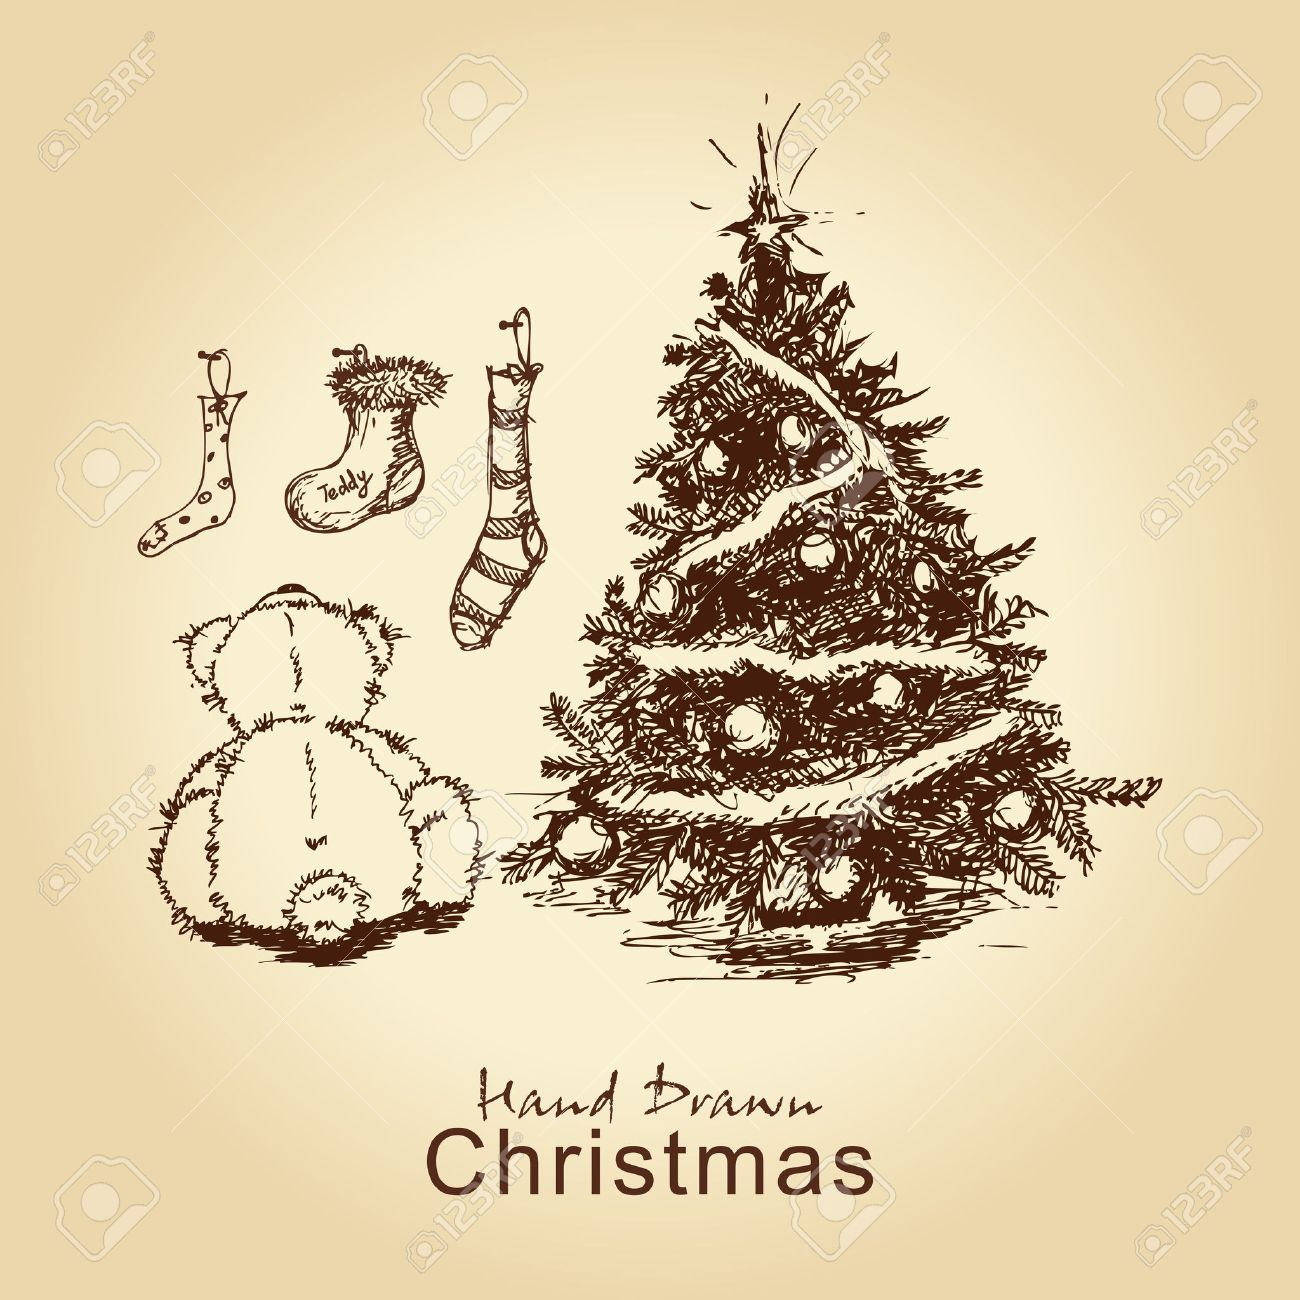 Hand Drawn Vintage Christmas Card With Teddy And Christmas Tree, For Xmas  Design Stock Vector